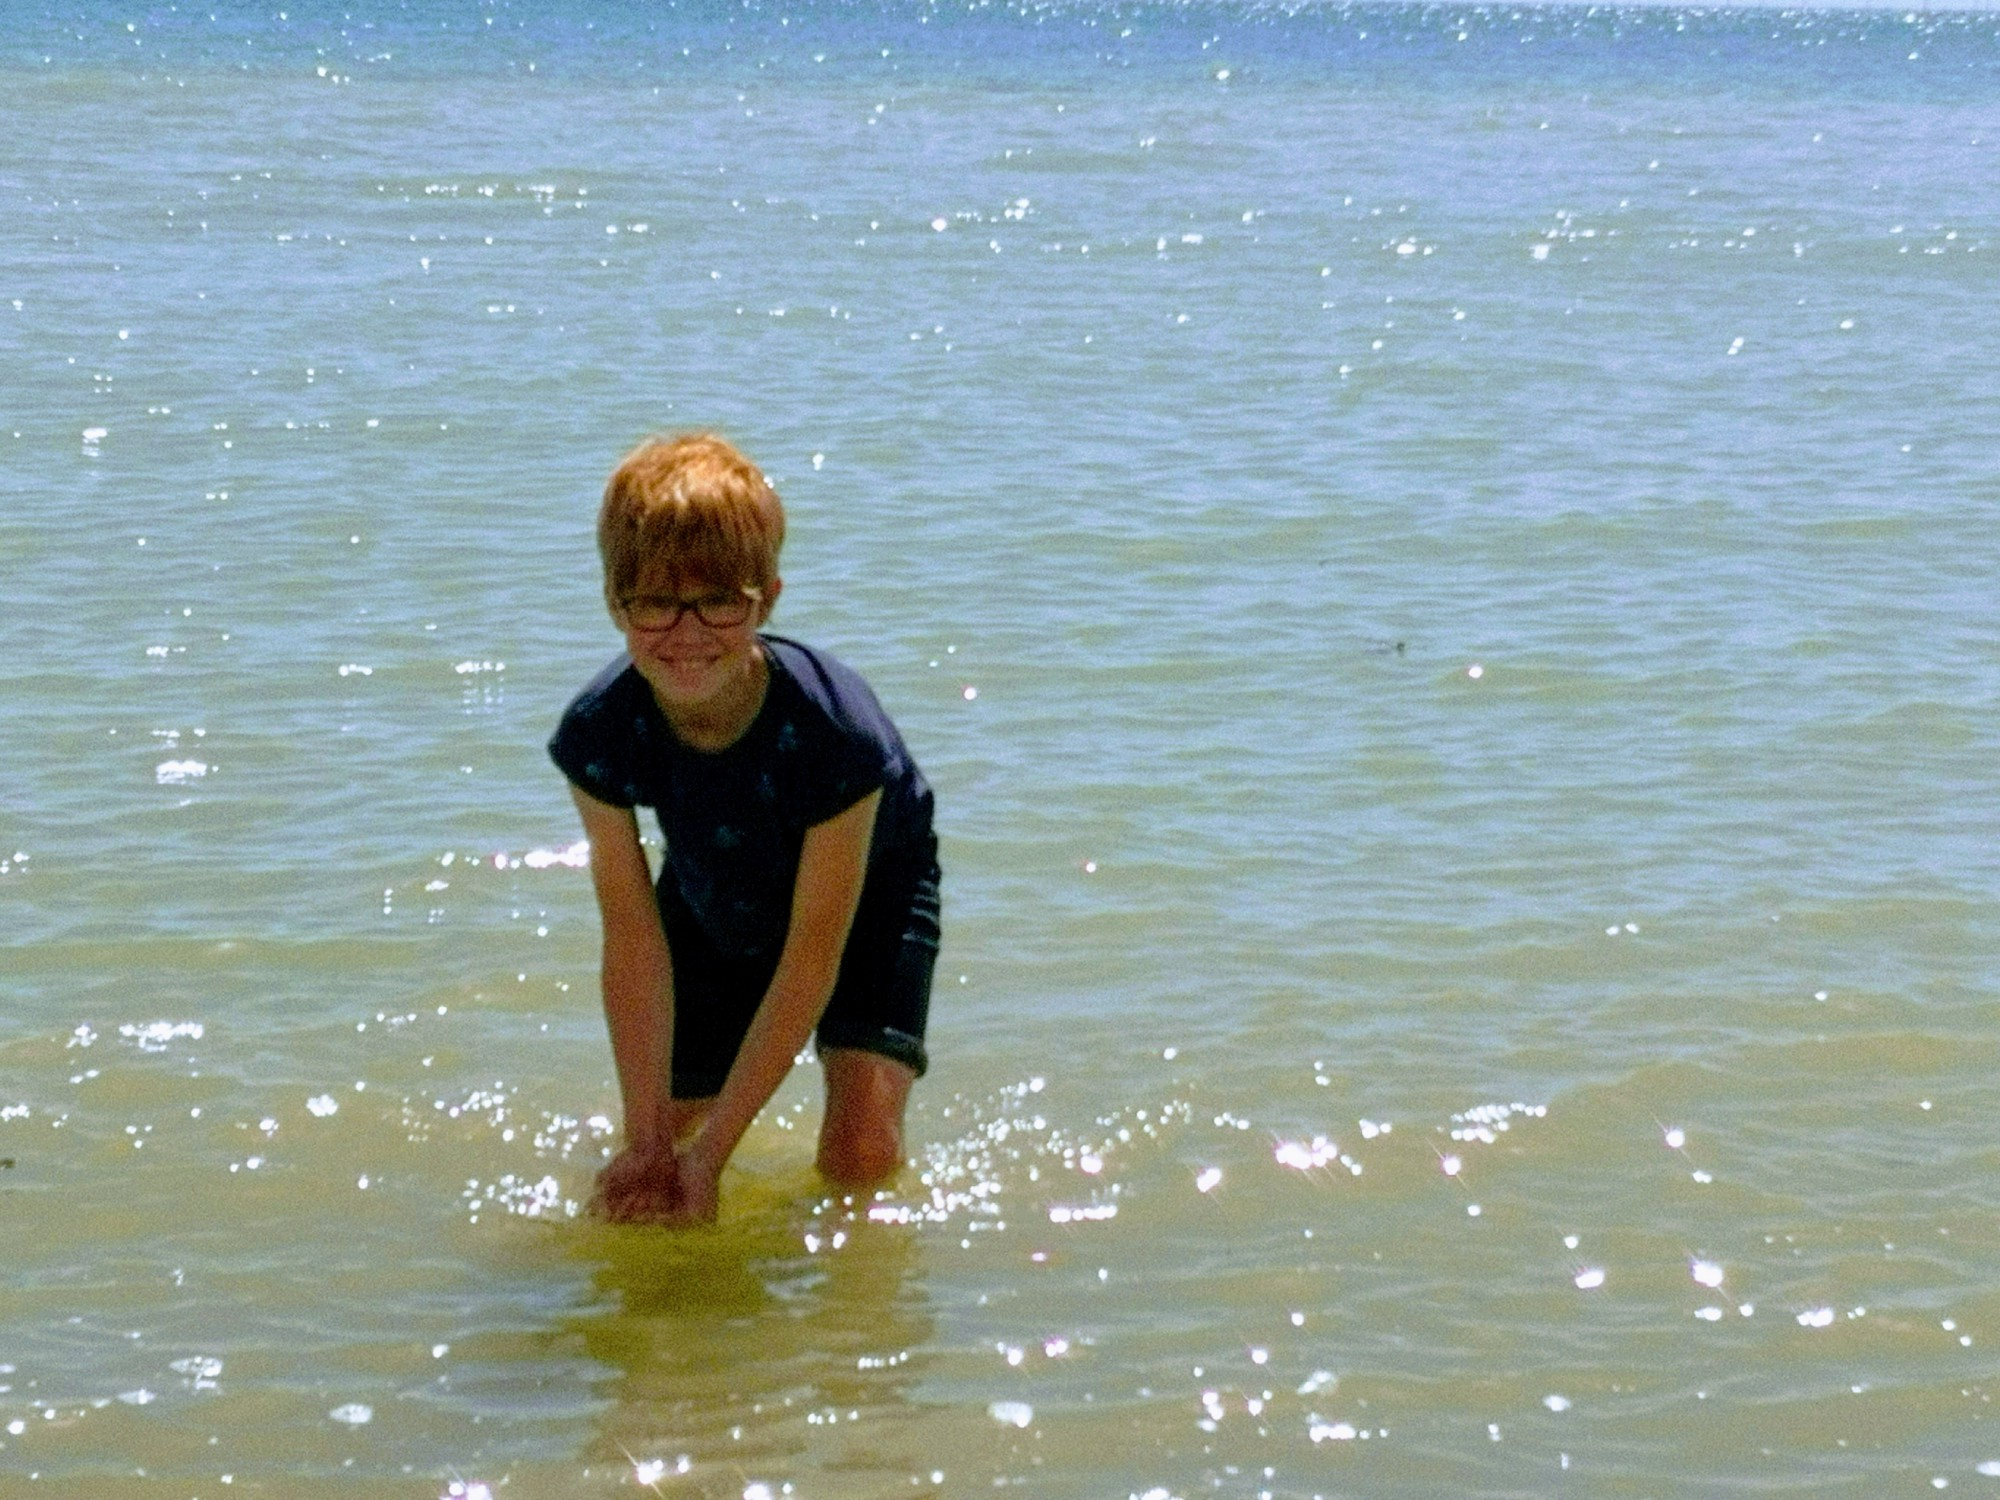 Smiling child in sparkling sea ready to splash